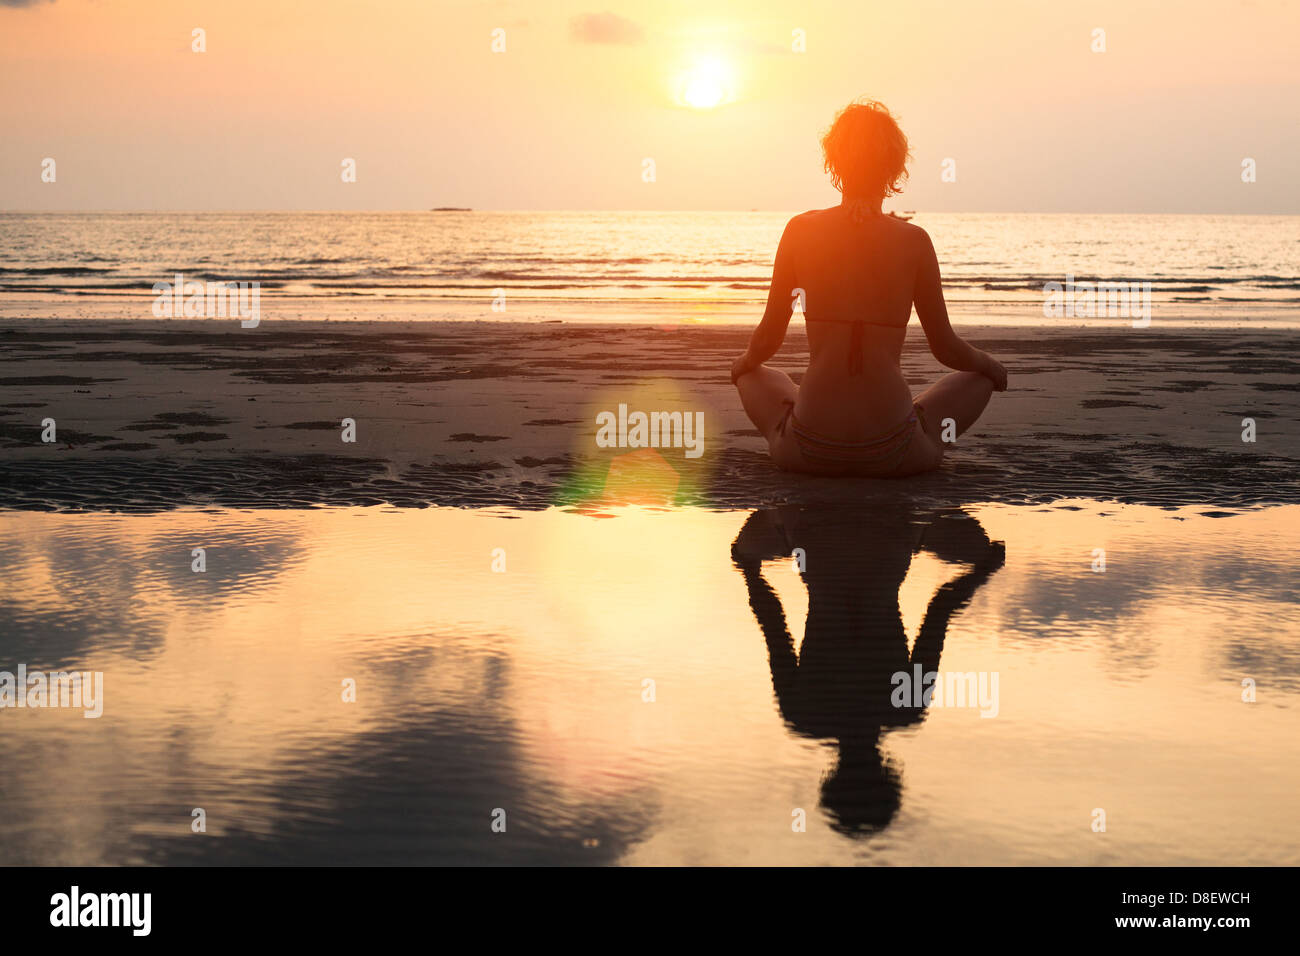 Yoga woman sitting in lotus pose on the beach during sunset, with reflection in water - in bright colors. - Stock Image